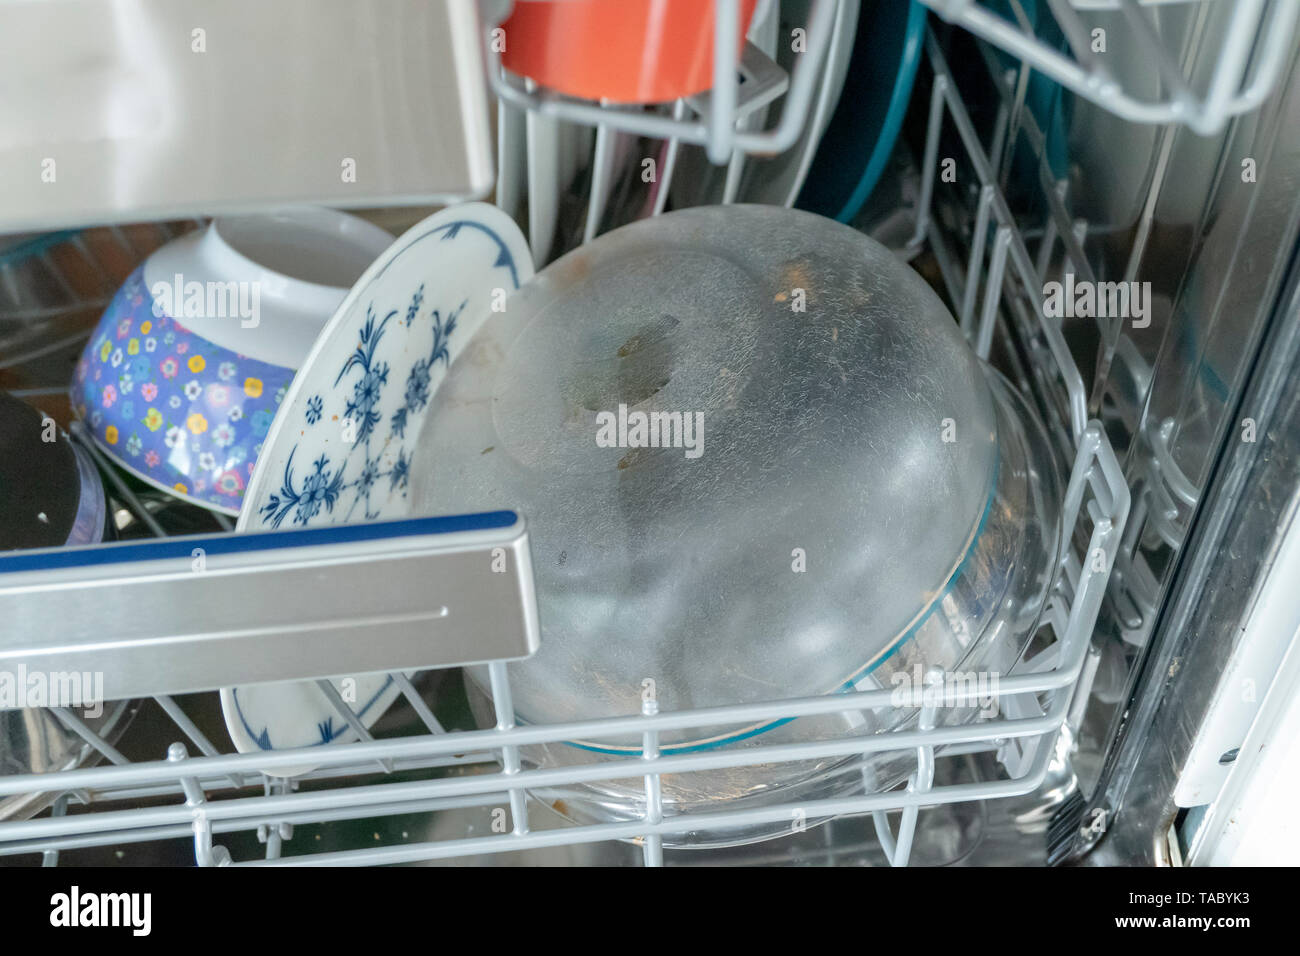 Dishes in the dishwasher dirty - Stock Image